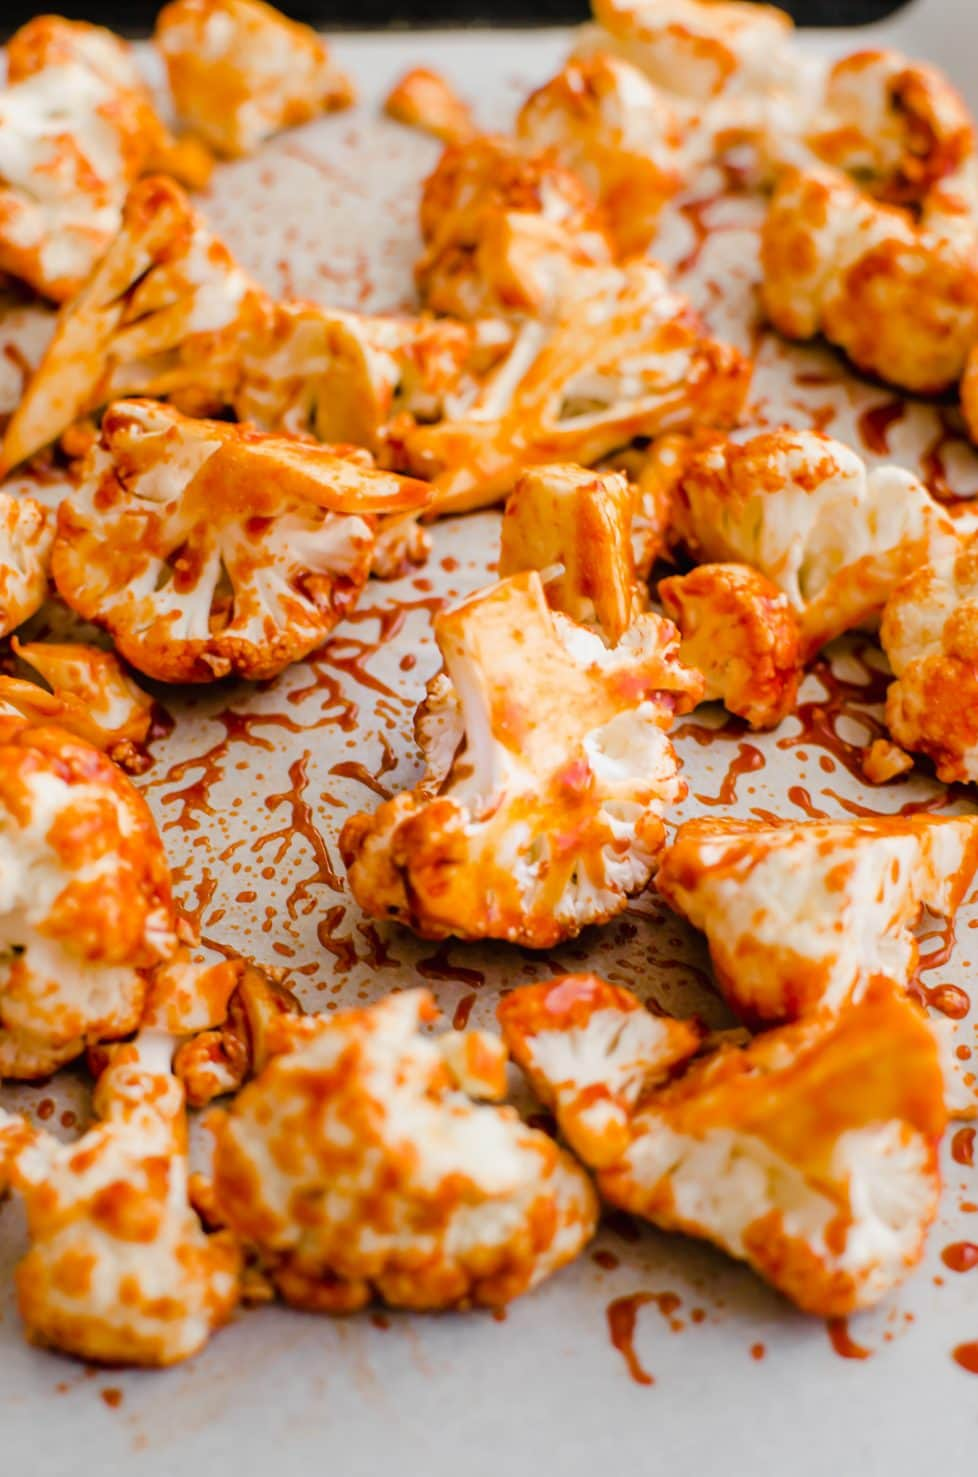 A close-up shot of cauliflower florets on a baking sheet coated in Korean-style sauce.